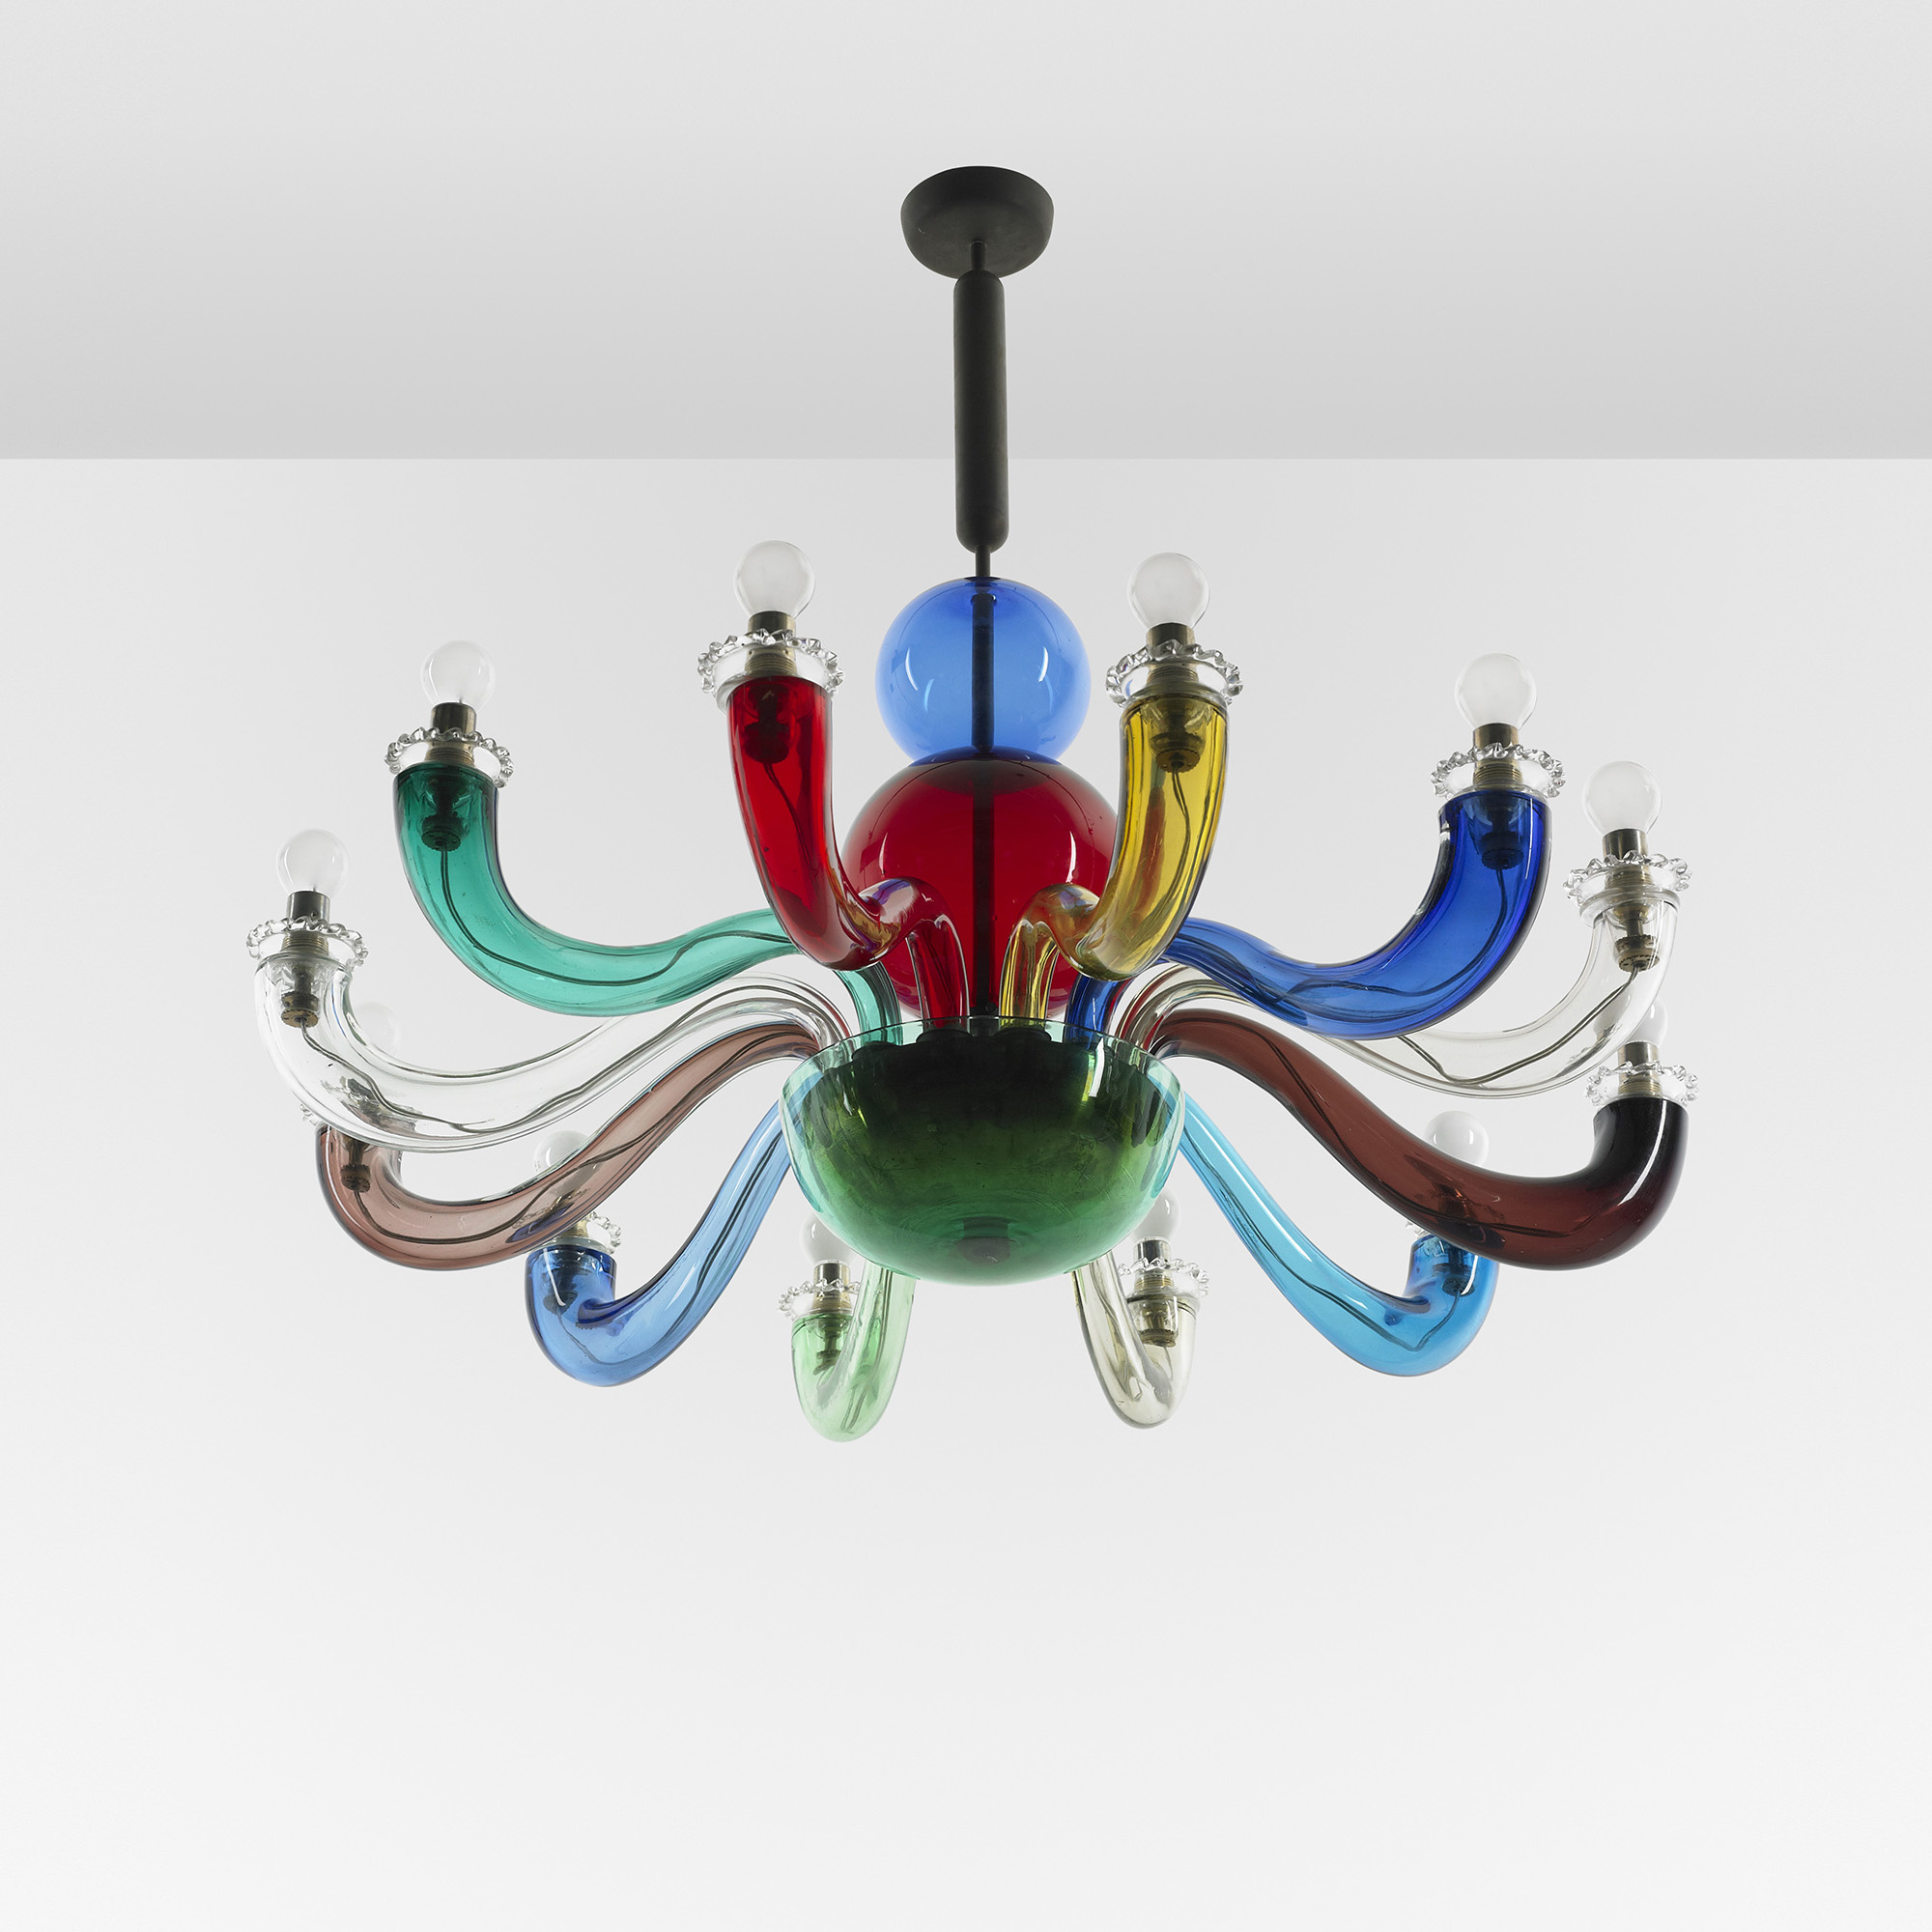 Lampadario Gio Ponti Venini.Gio Ponti Chandelier From The Ponti Residence In Liguria